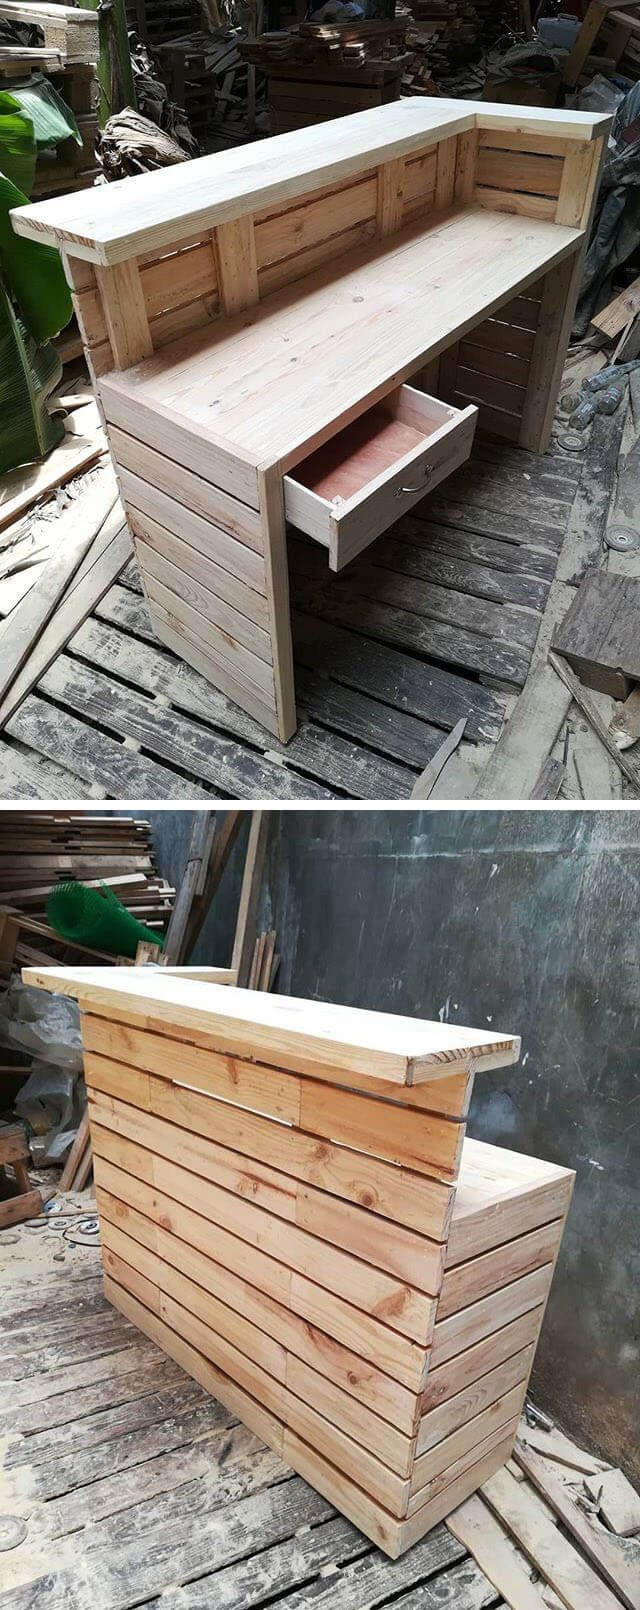 pallet bar ideas for outdoor projects ideas